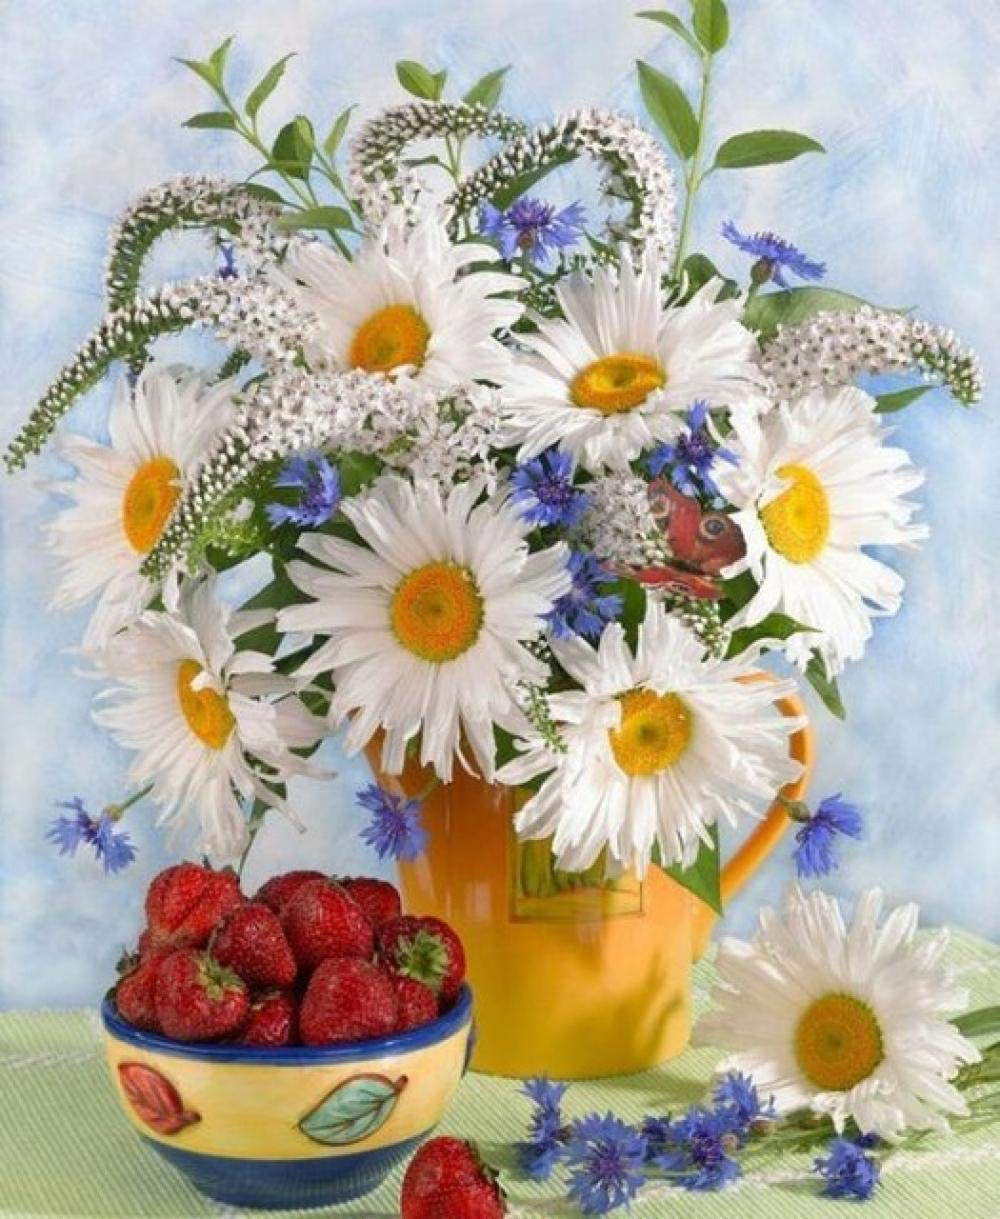 YHKTYV Flower Arrangement and Max 76% OFF Strawberries Limited time cheap sale 120 Puzzles Piece DIY